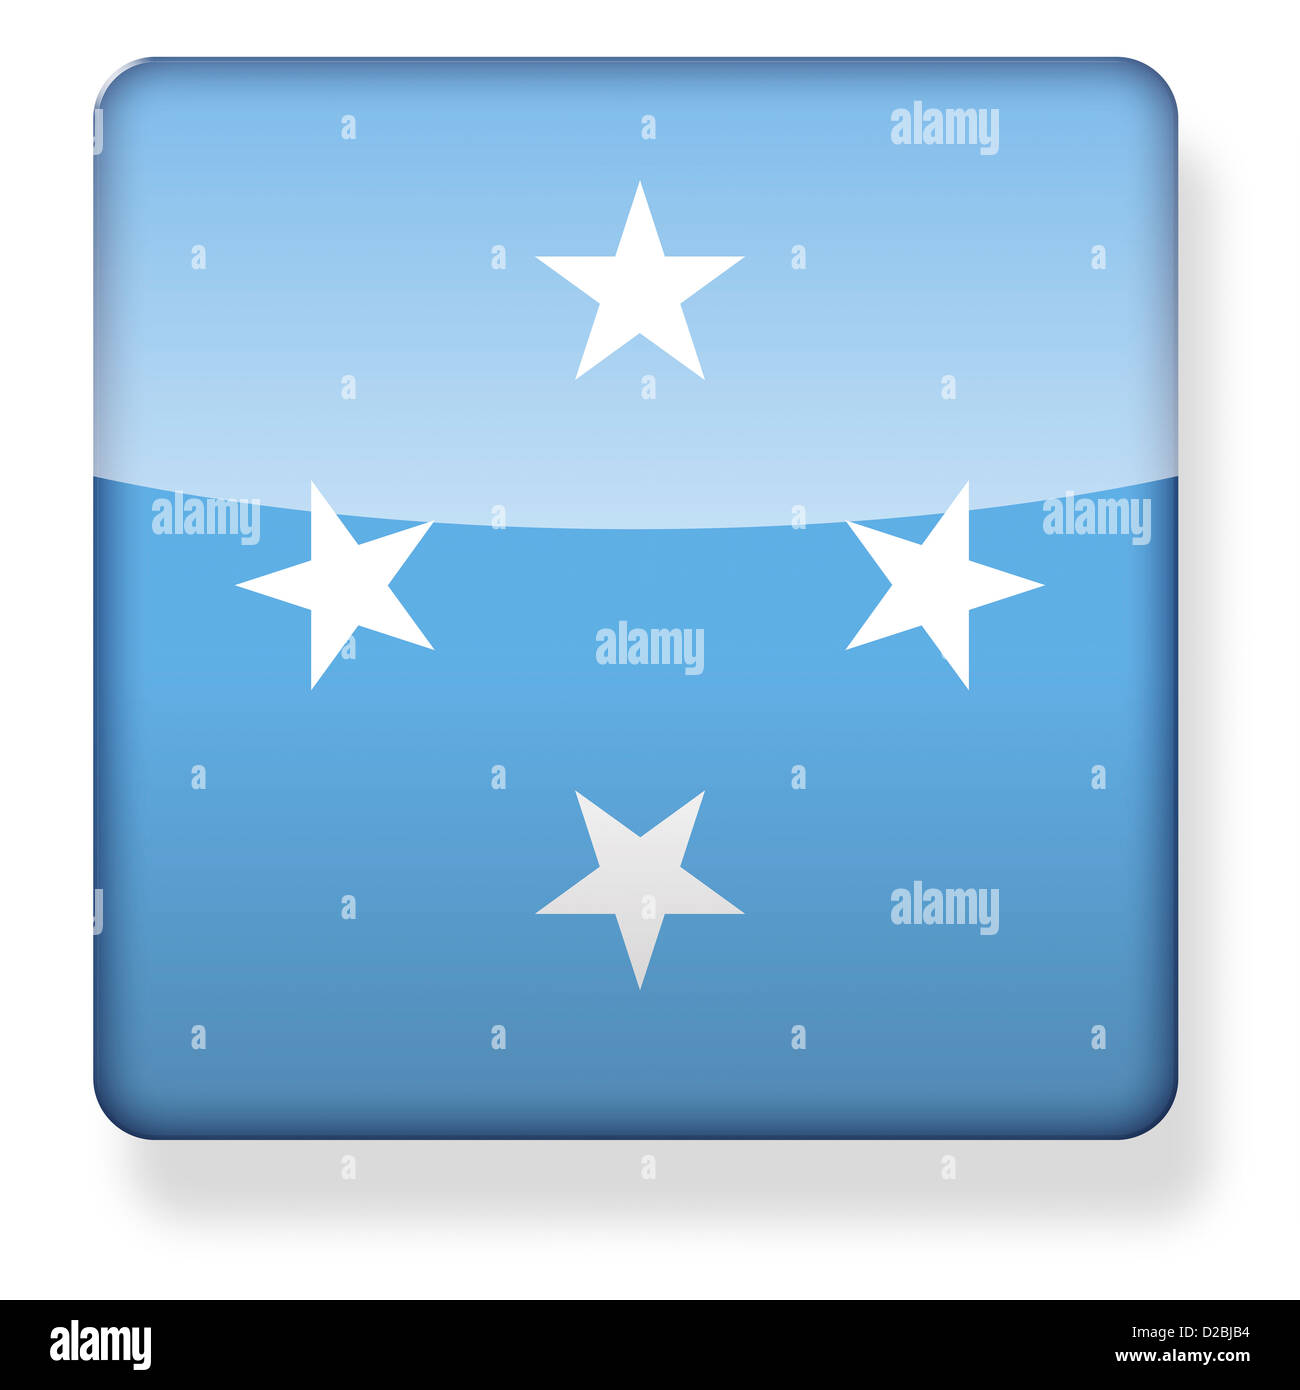 Micronesia flag as an app icon. Clipping path included. - Stock Image